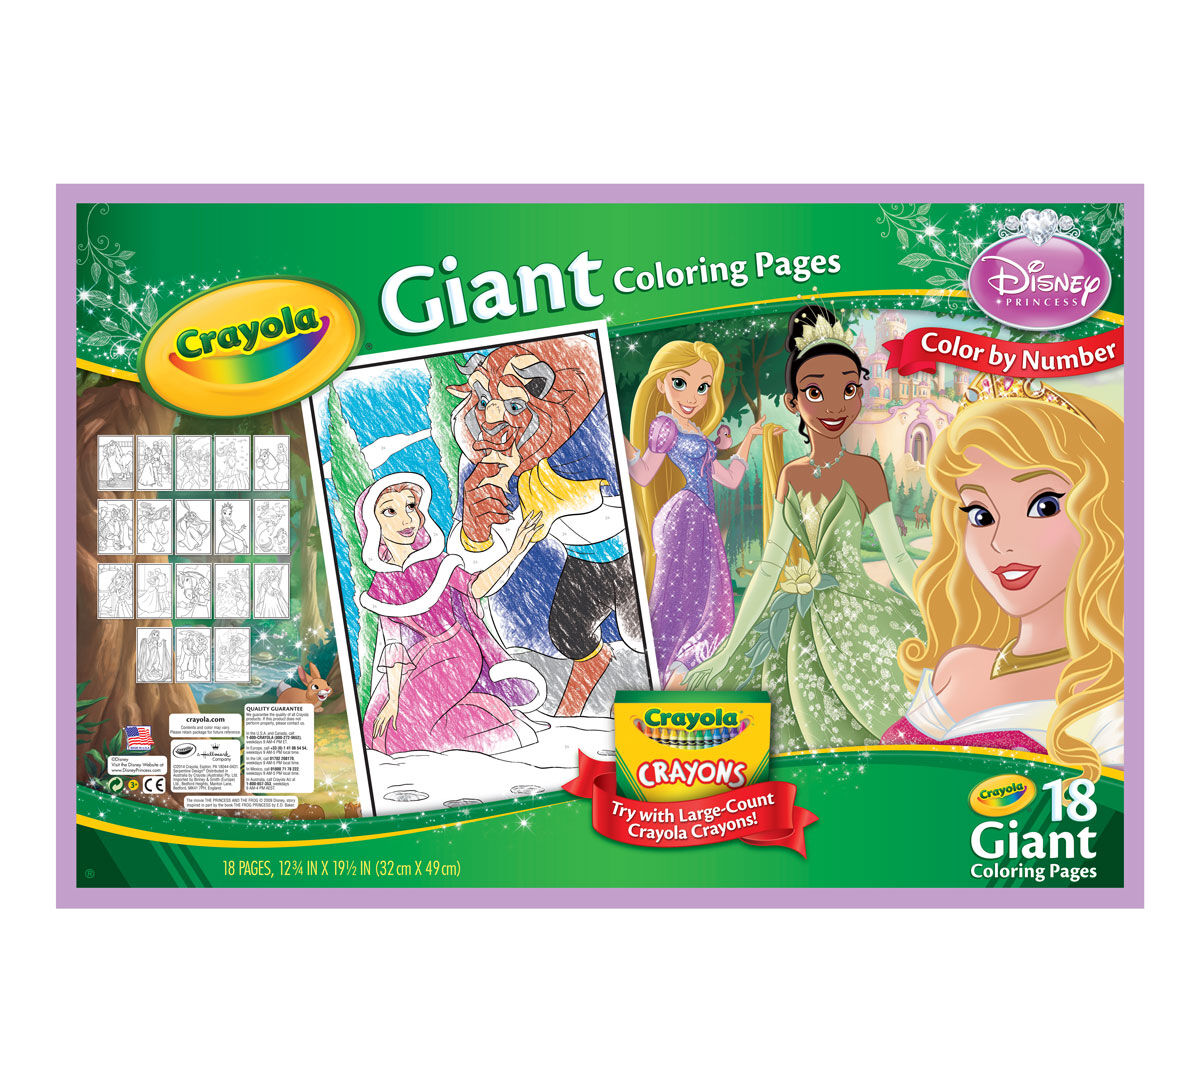 giant coloring pages crayola - photo#5